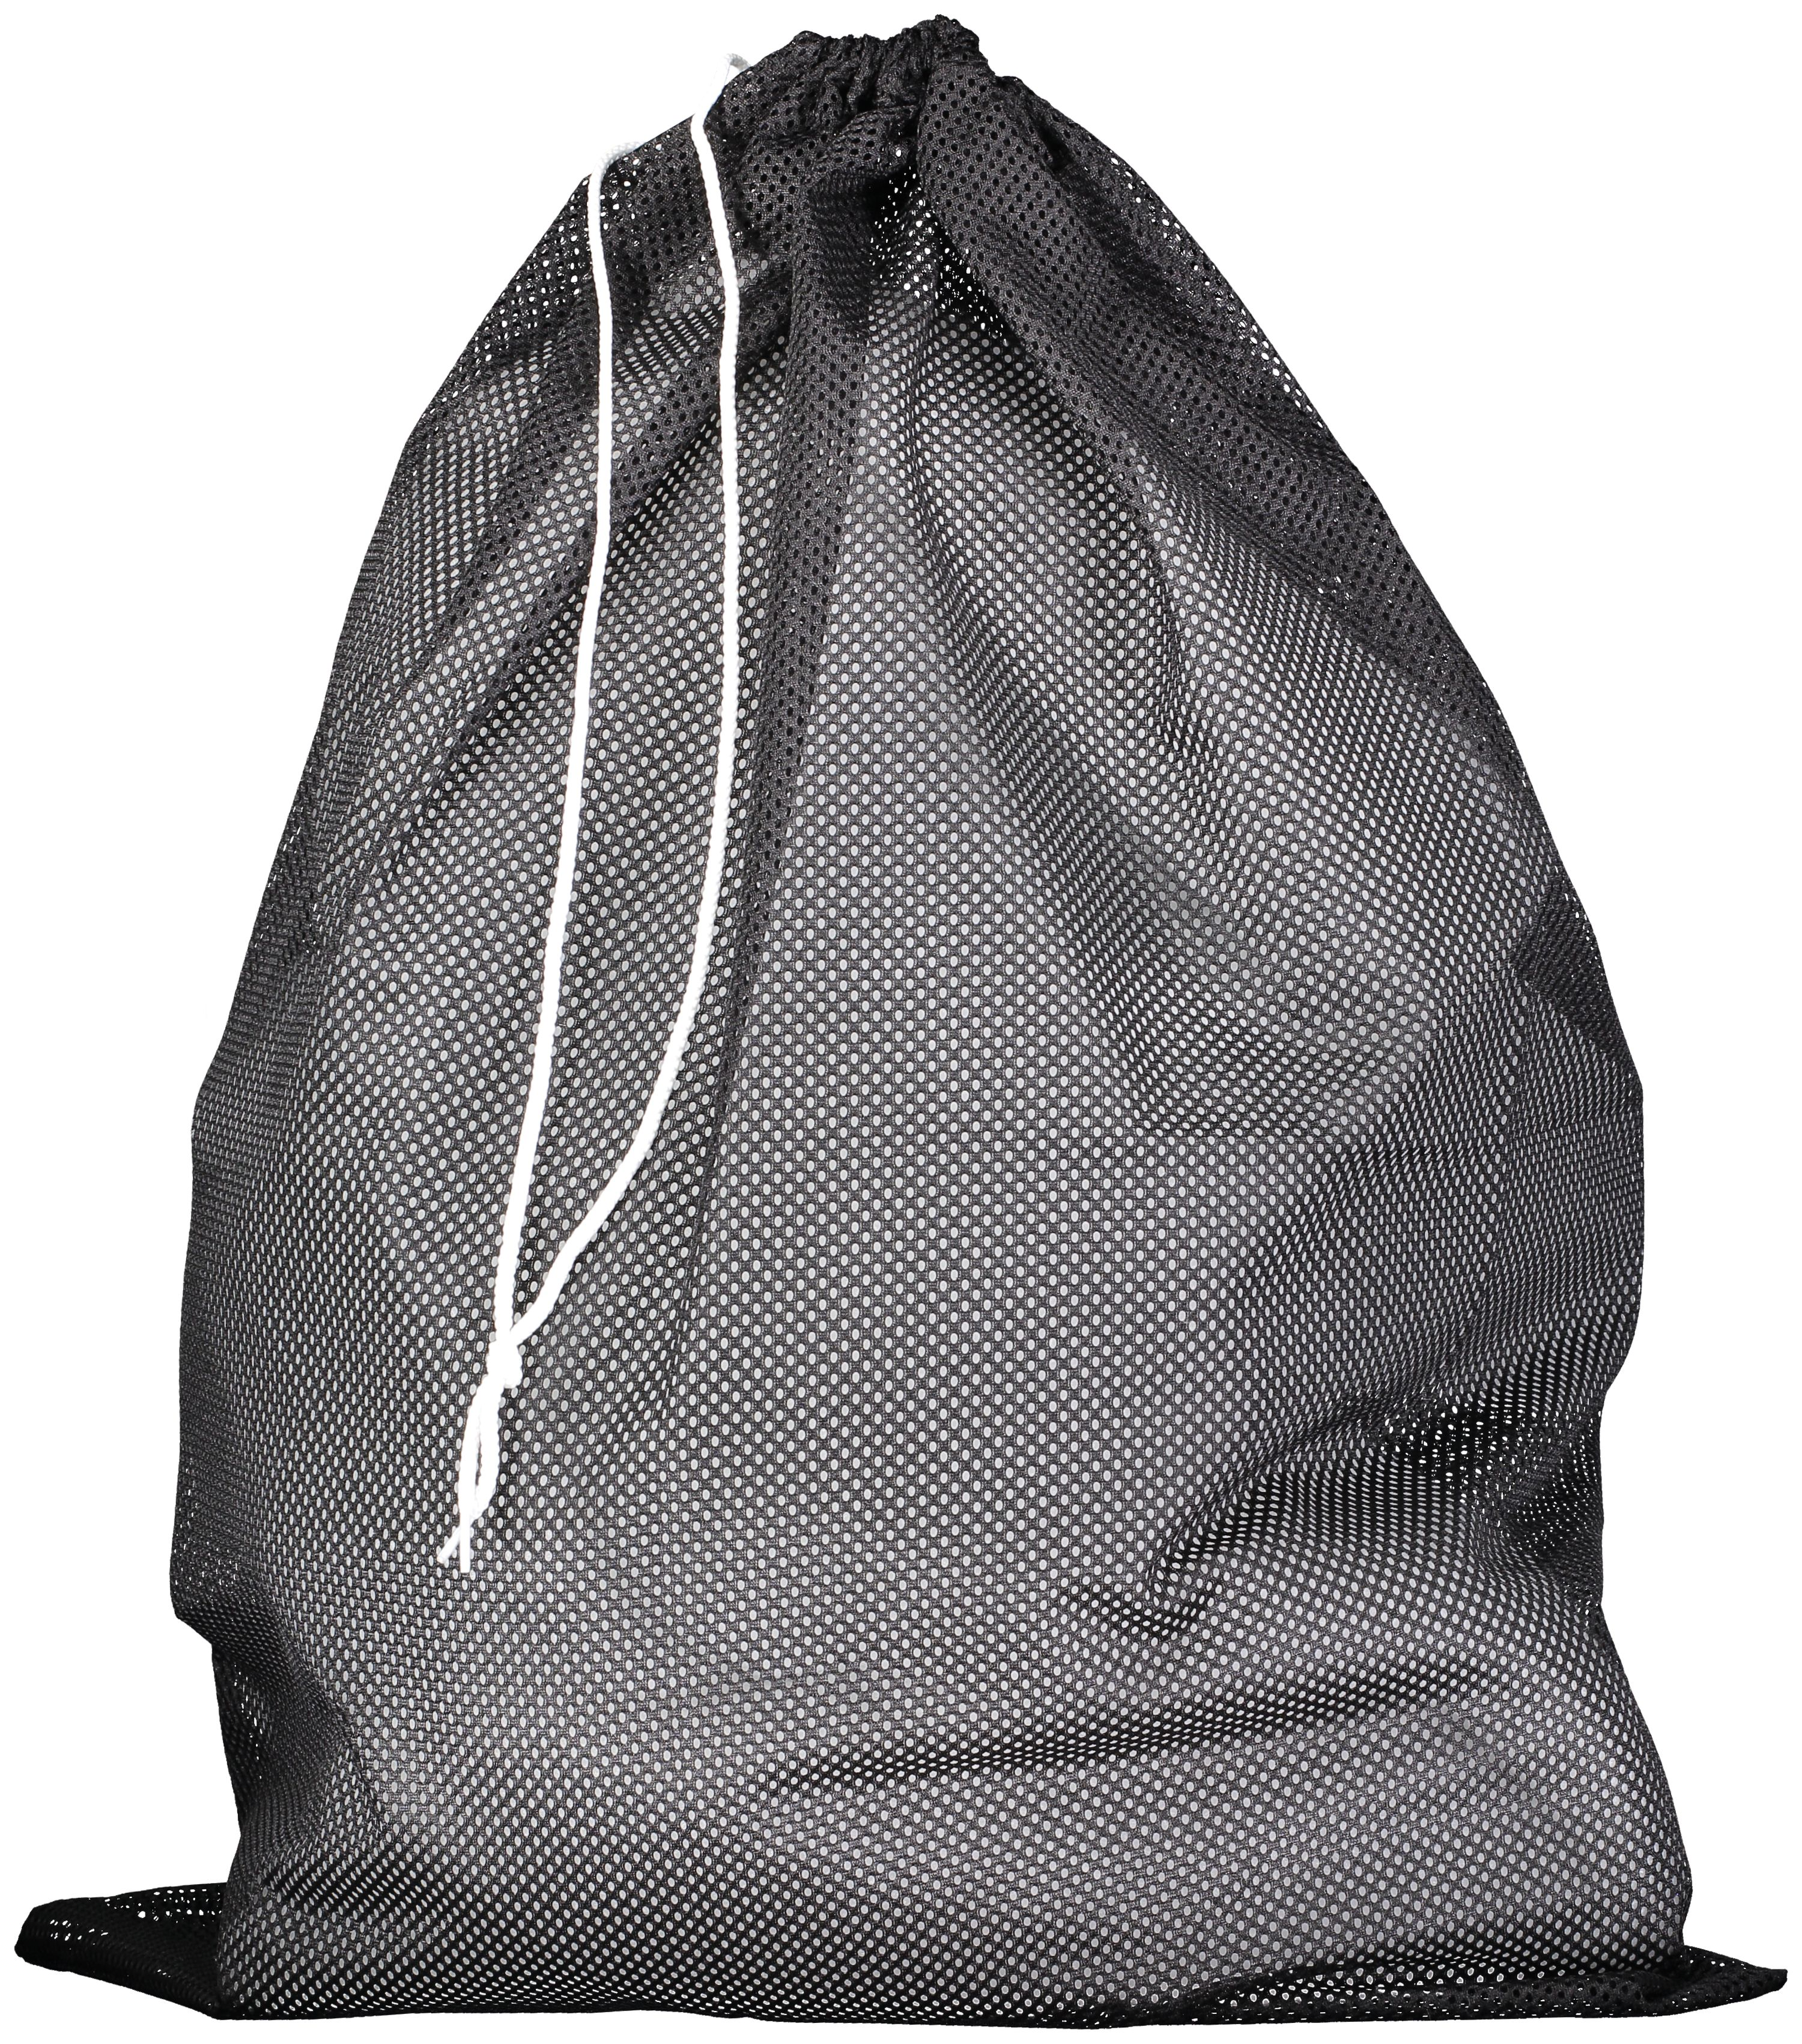 Mesh Laundry Bag - Black